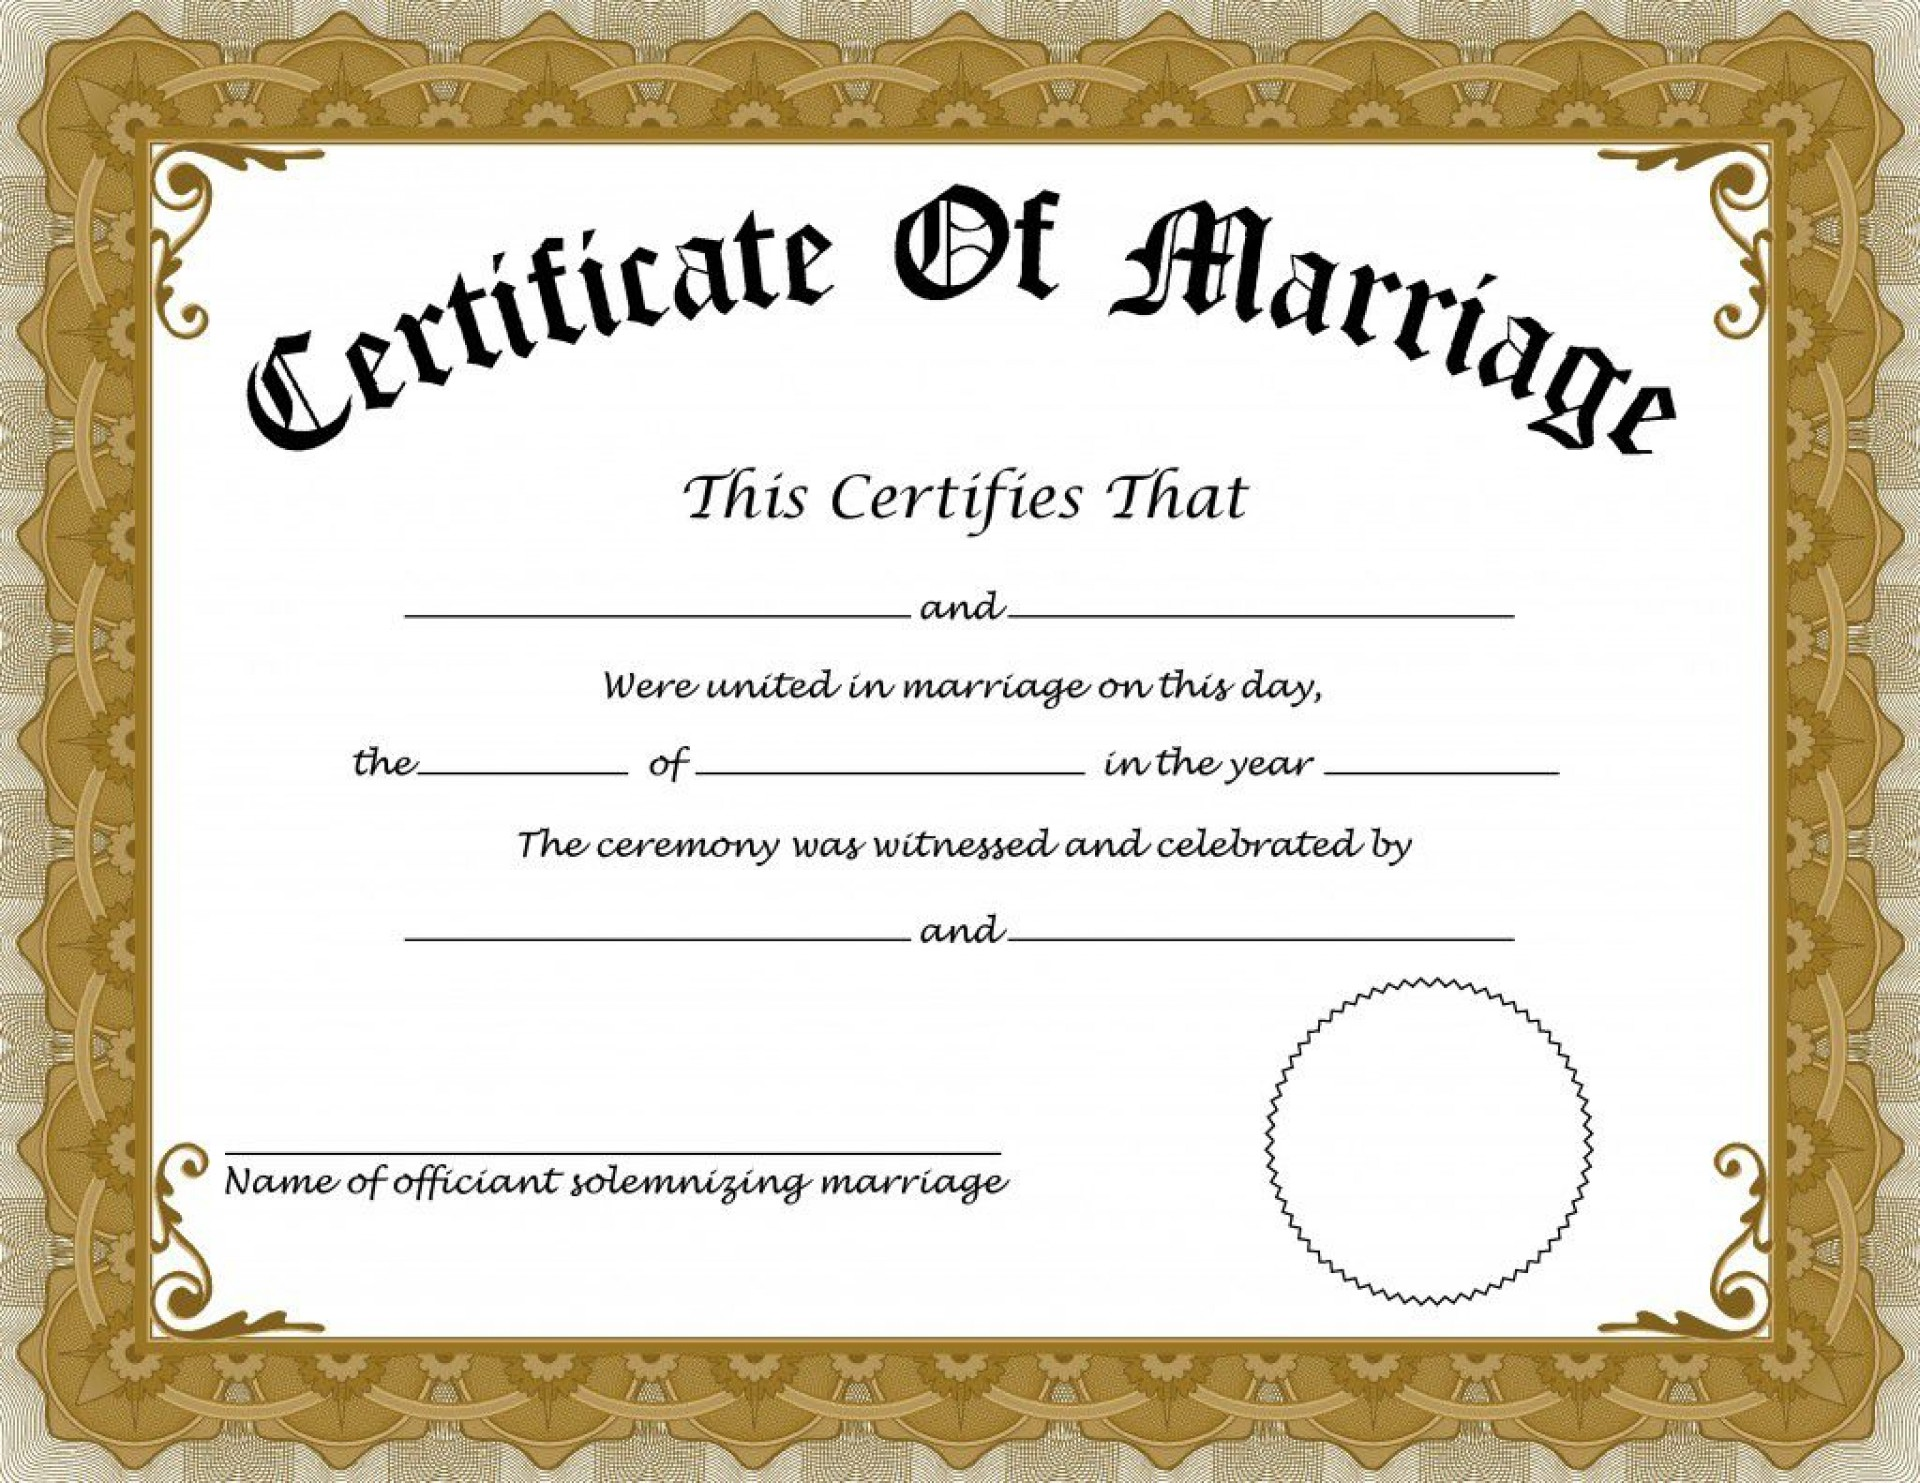 008 Wonderful Certificate Of Marriage Template High Definition  Word Australia1920